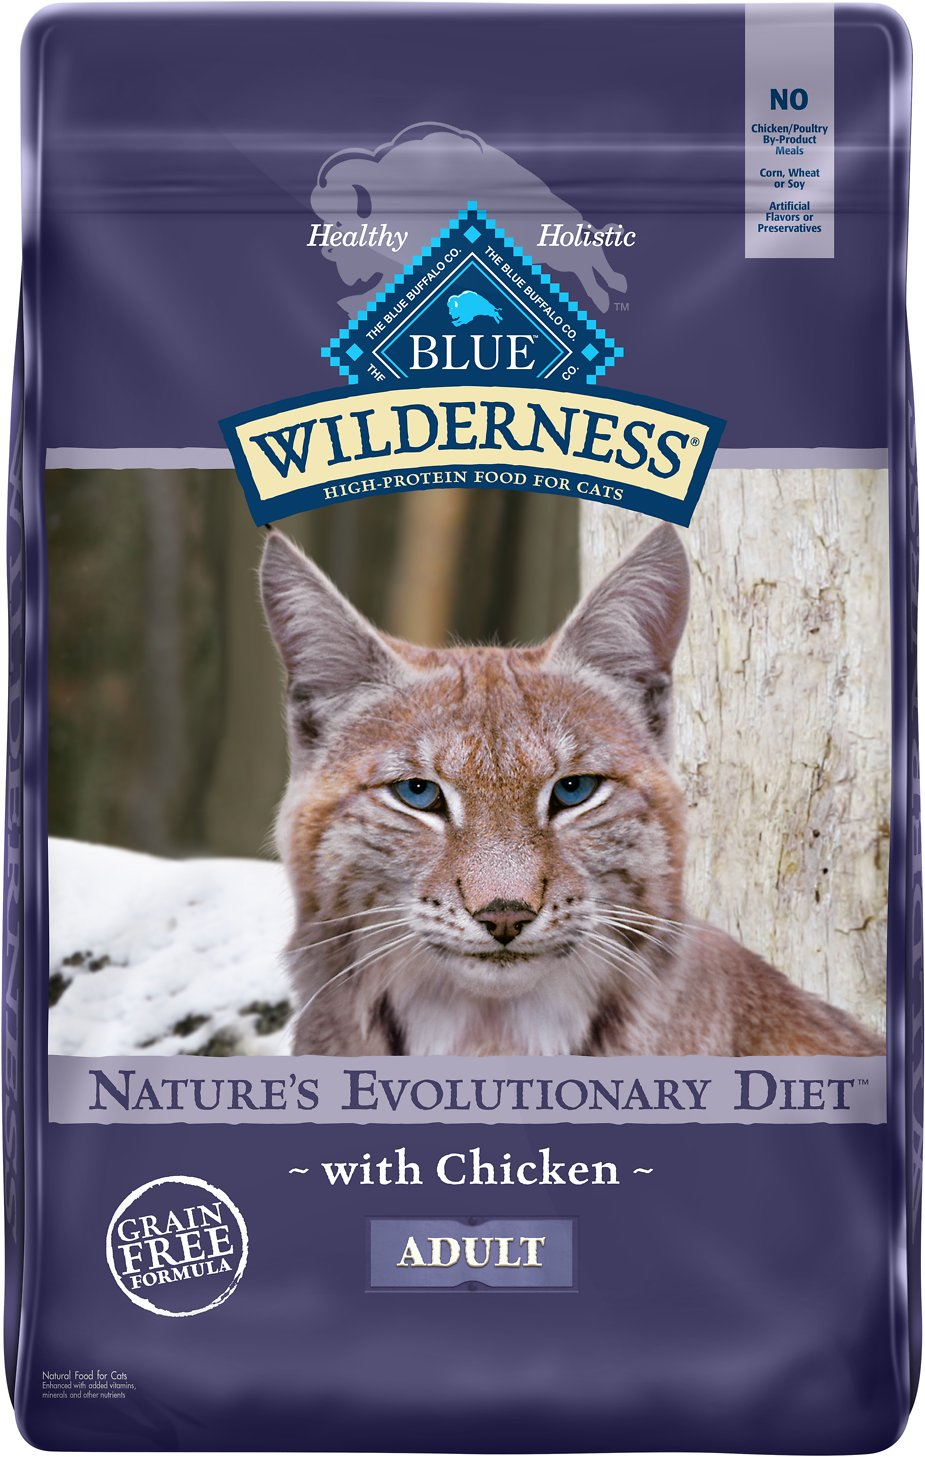 Blue buffalo wilderness chicken recipe grain free dry cat food 12 video forumfinder Images